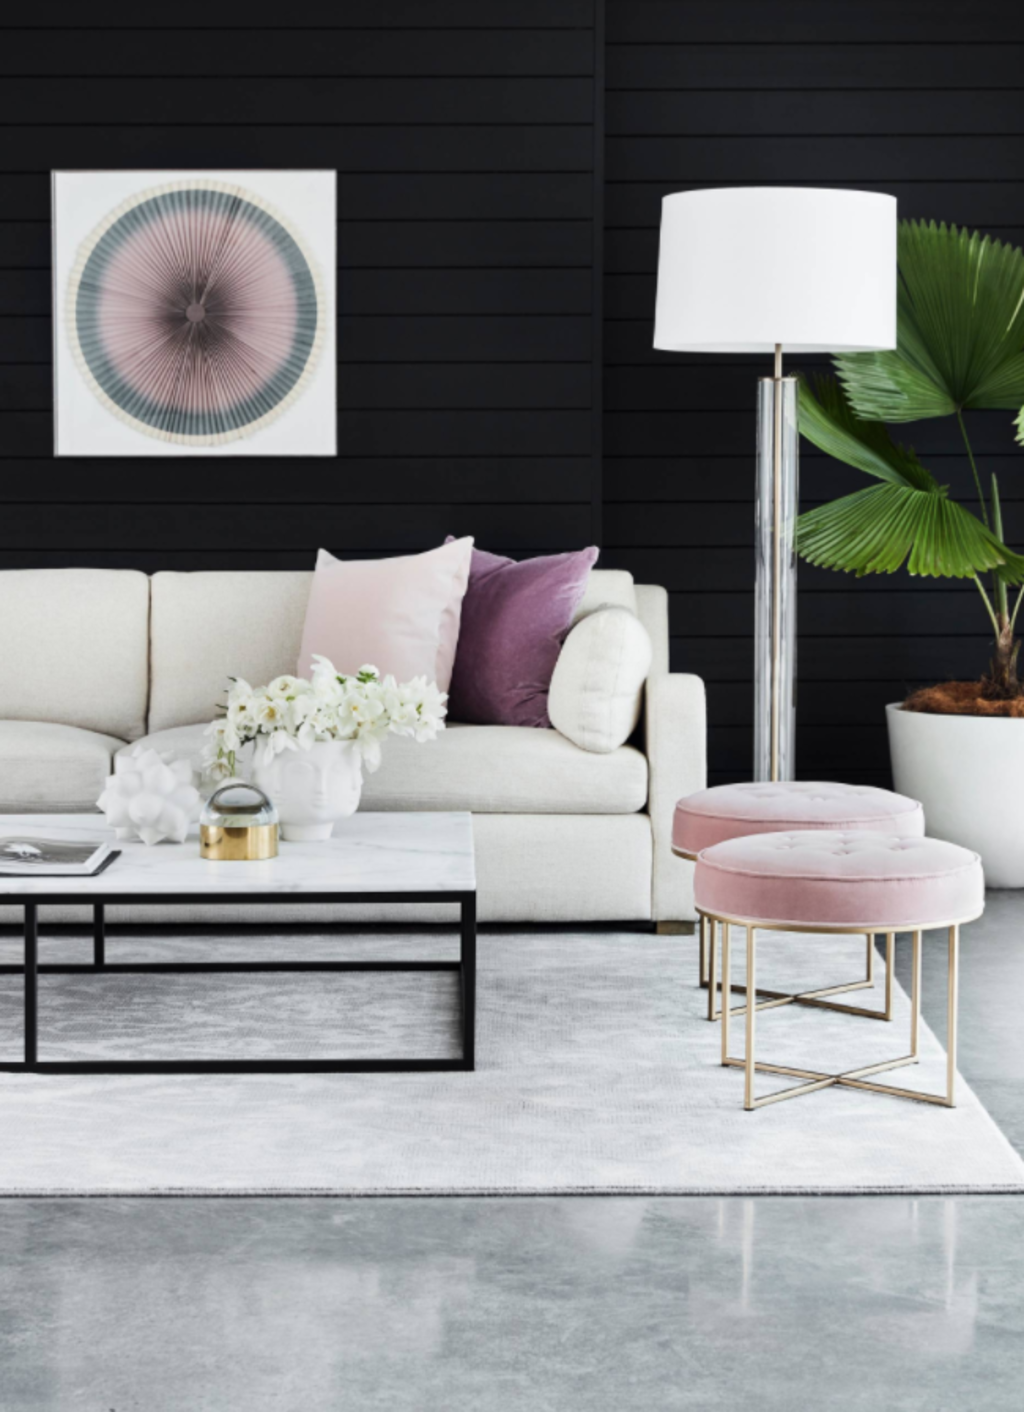 How To Create A Balanced Colour Scheme In Your Home According To An Interior Designer